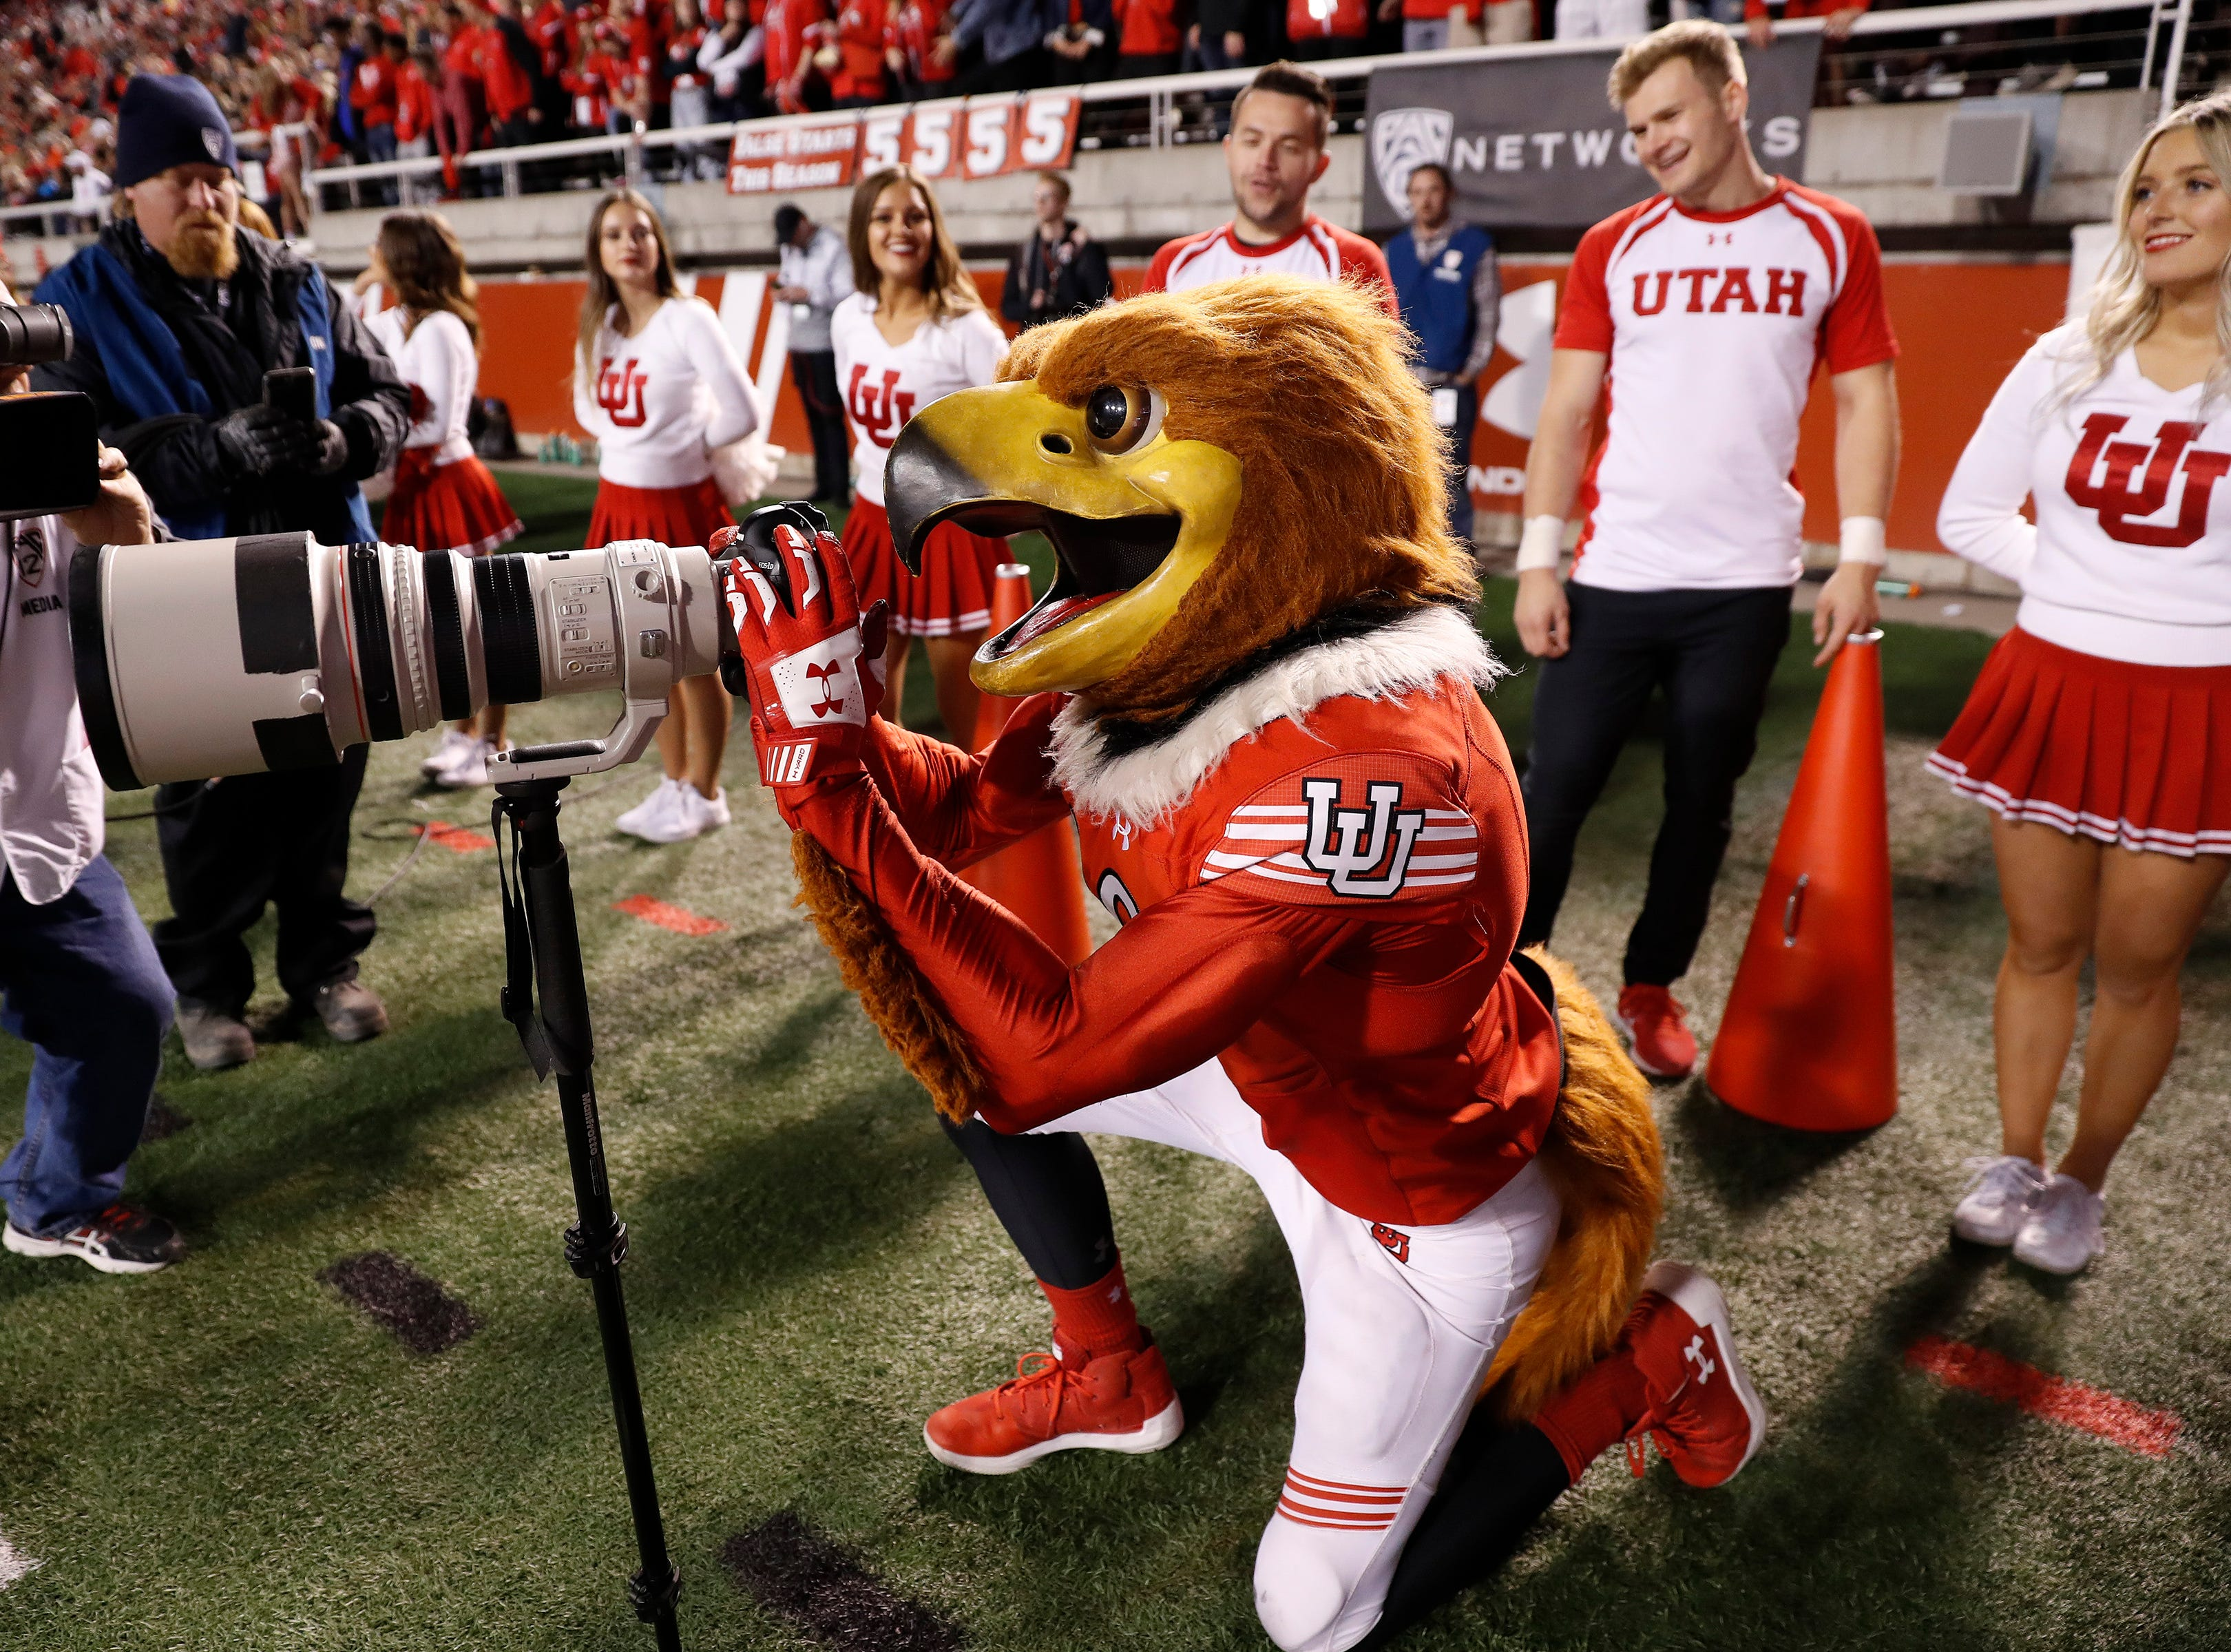 Week 8: Utah Utes mascot Swoop took control of a camera for a play in the fourth quarter against the USC Trojans at Rice-Eccles Stadium.